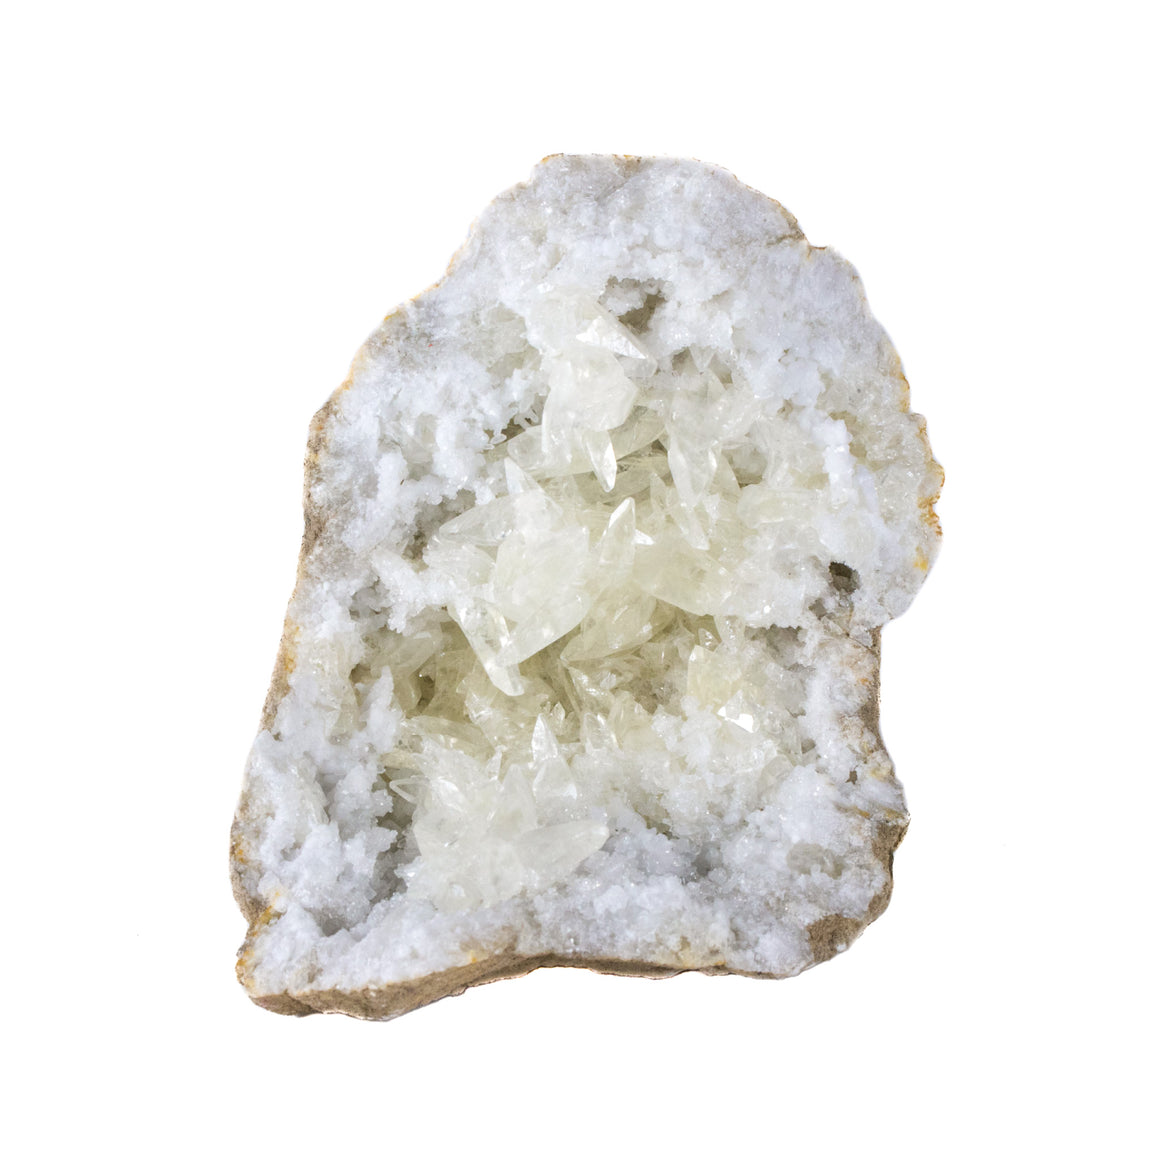 Quartz Geode with Calcite Crystals, white crystals from Morocco